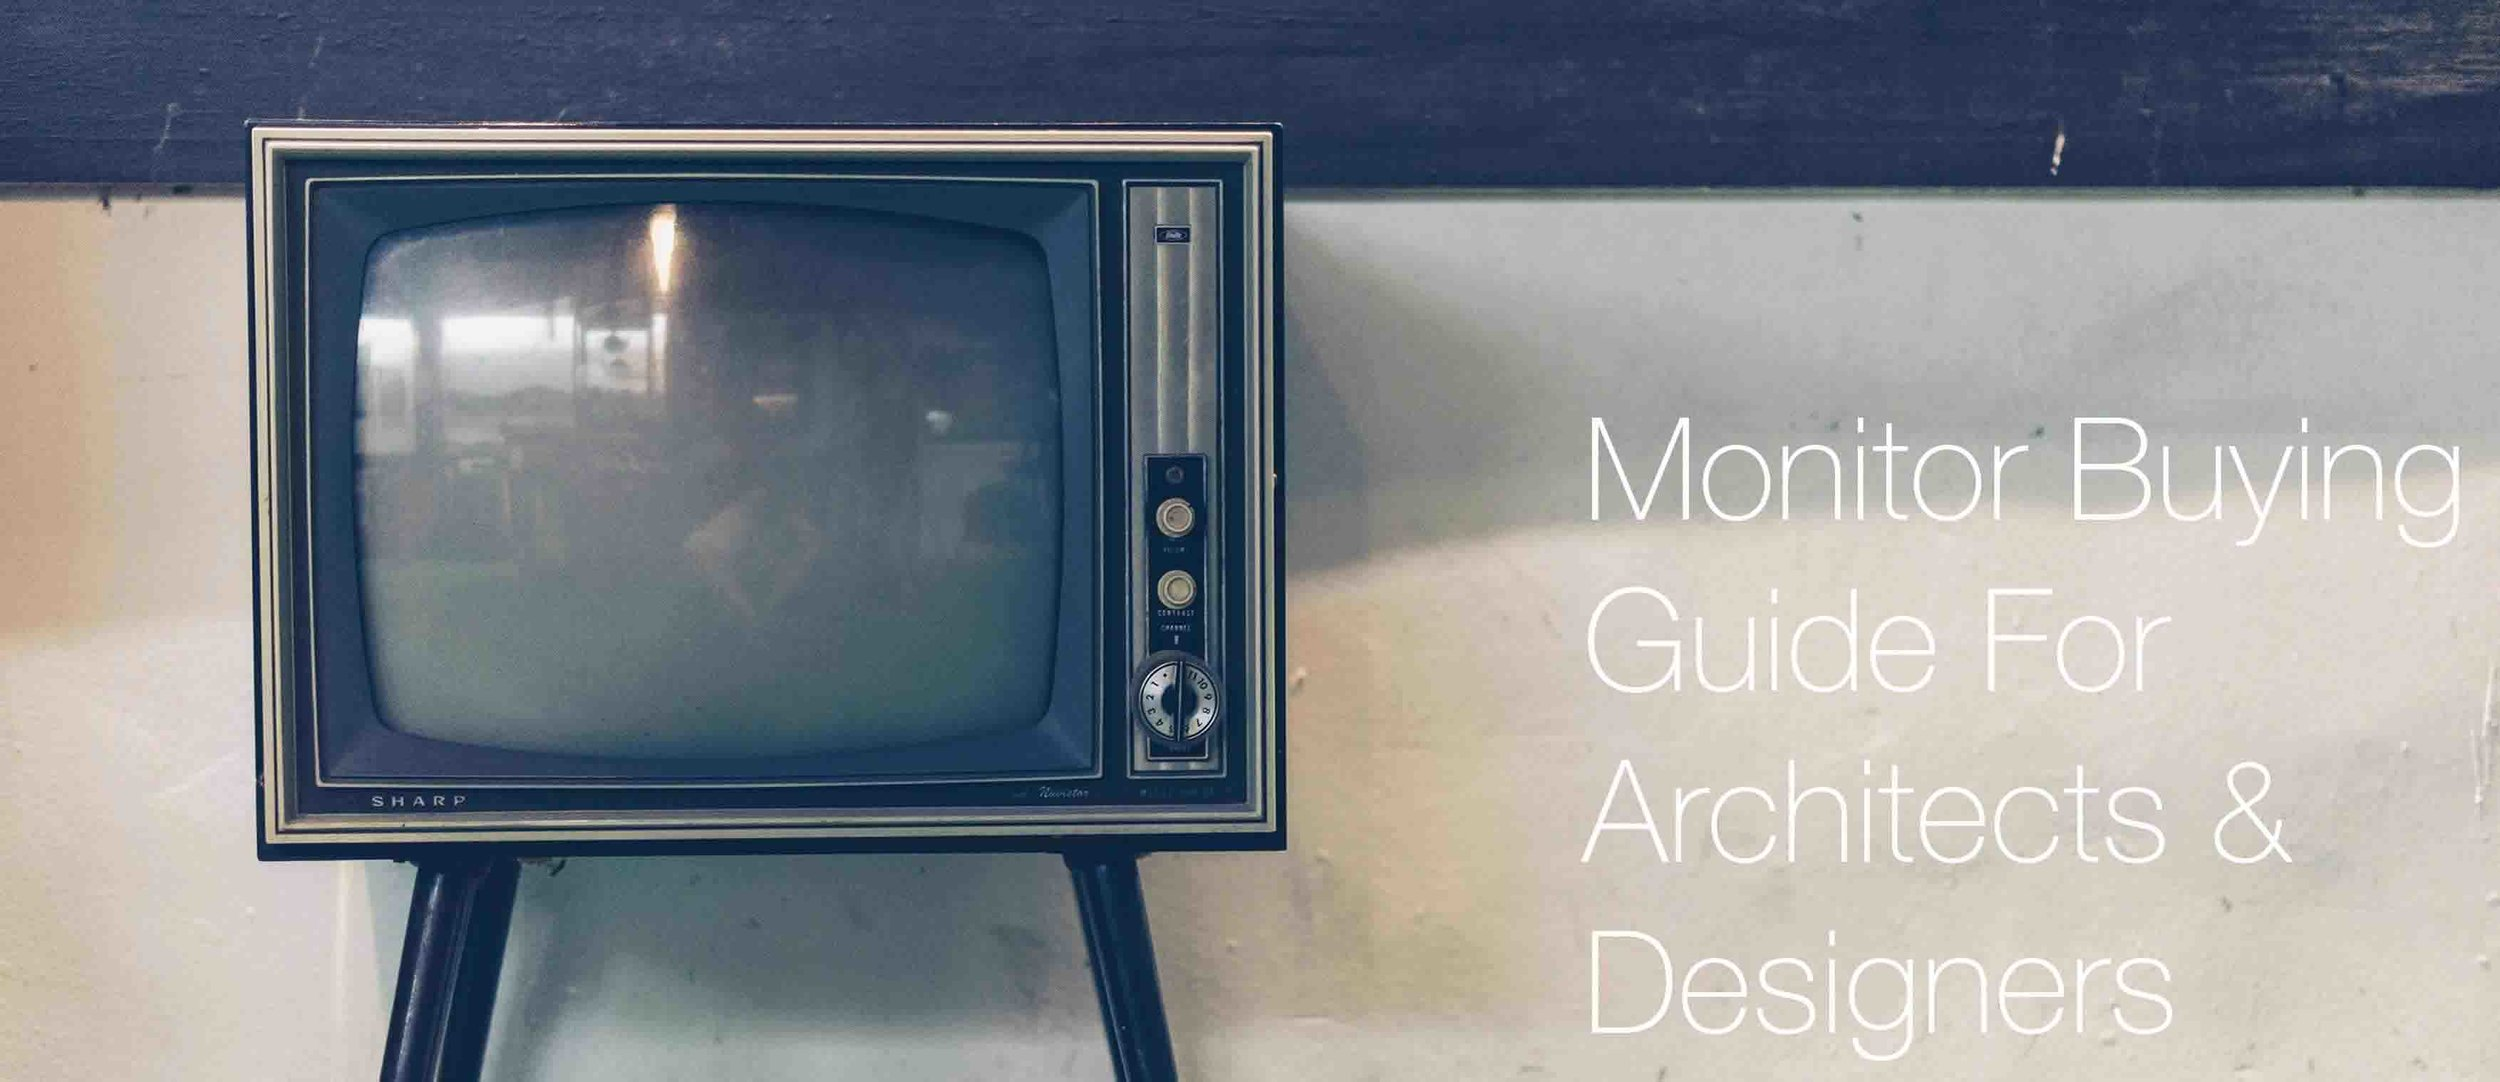 Monitor Buying Guide For Architects, Architecure Students & Designers.jpg